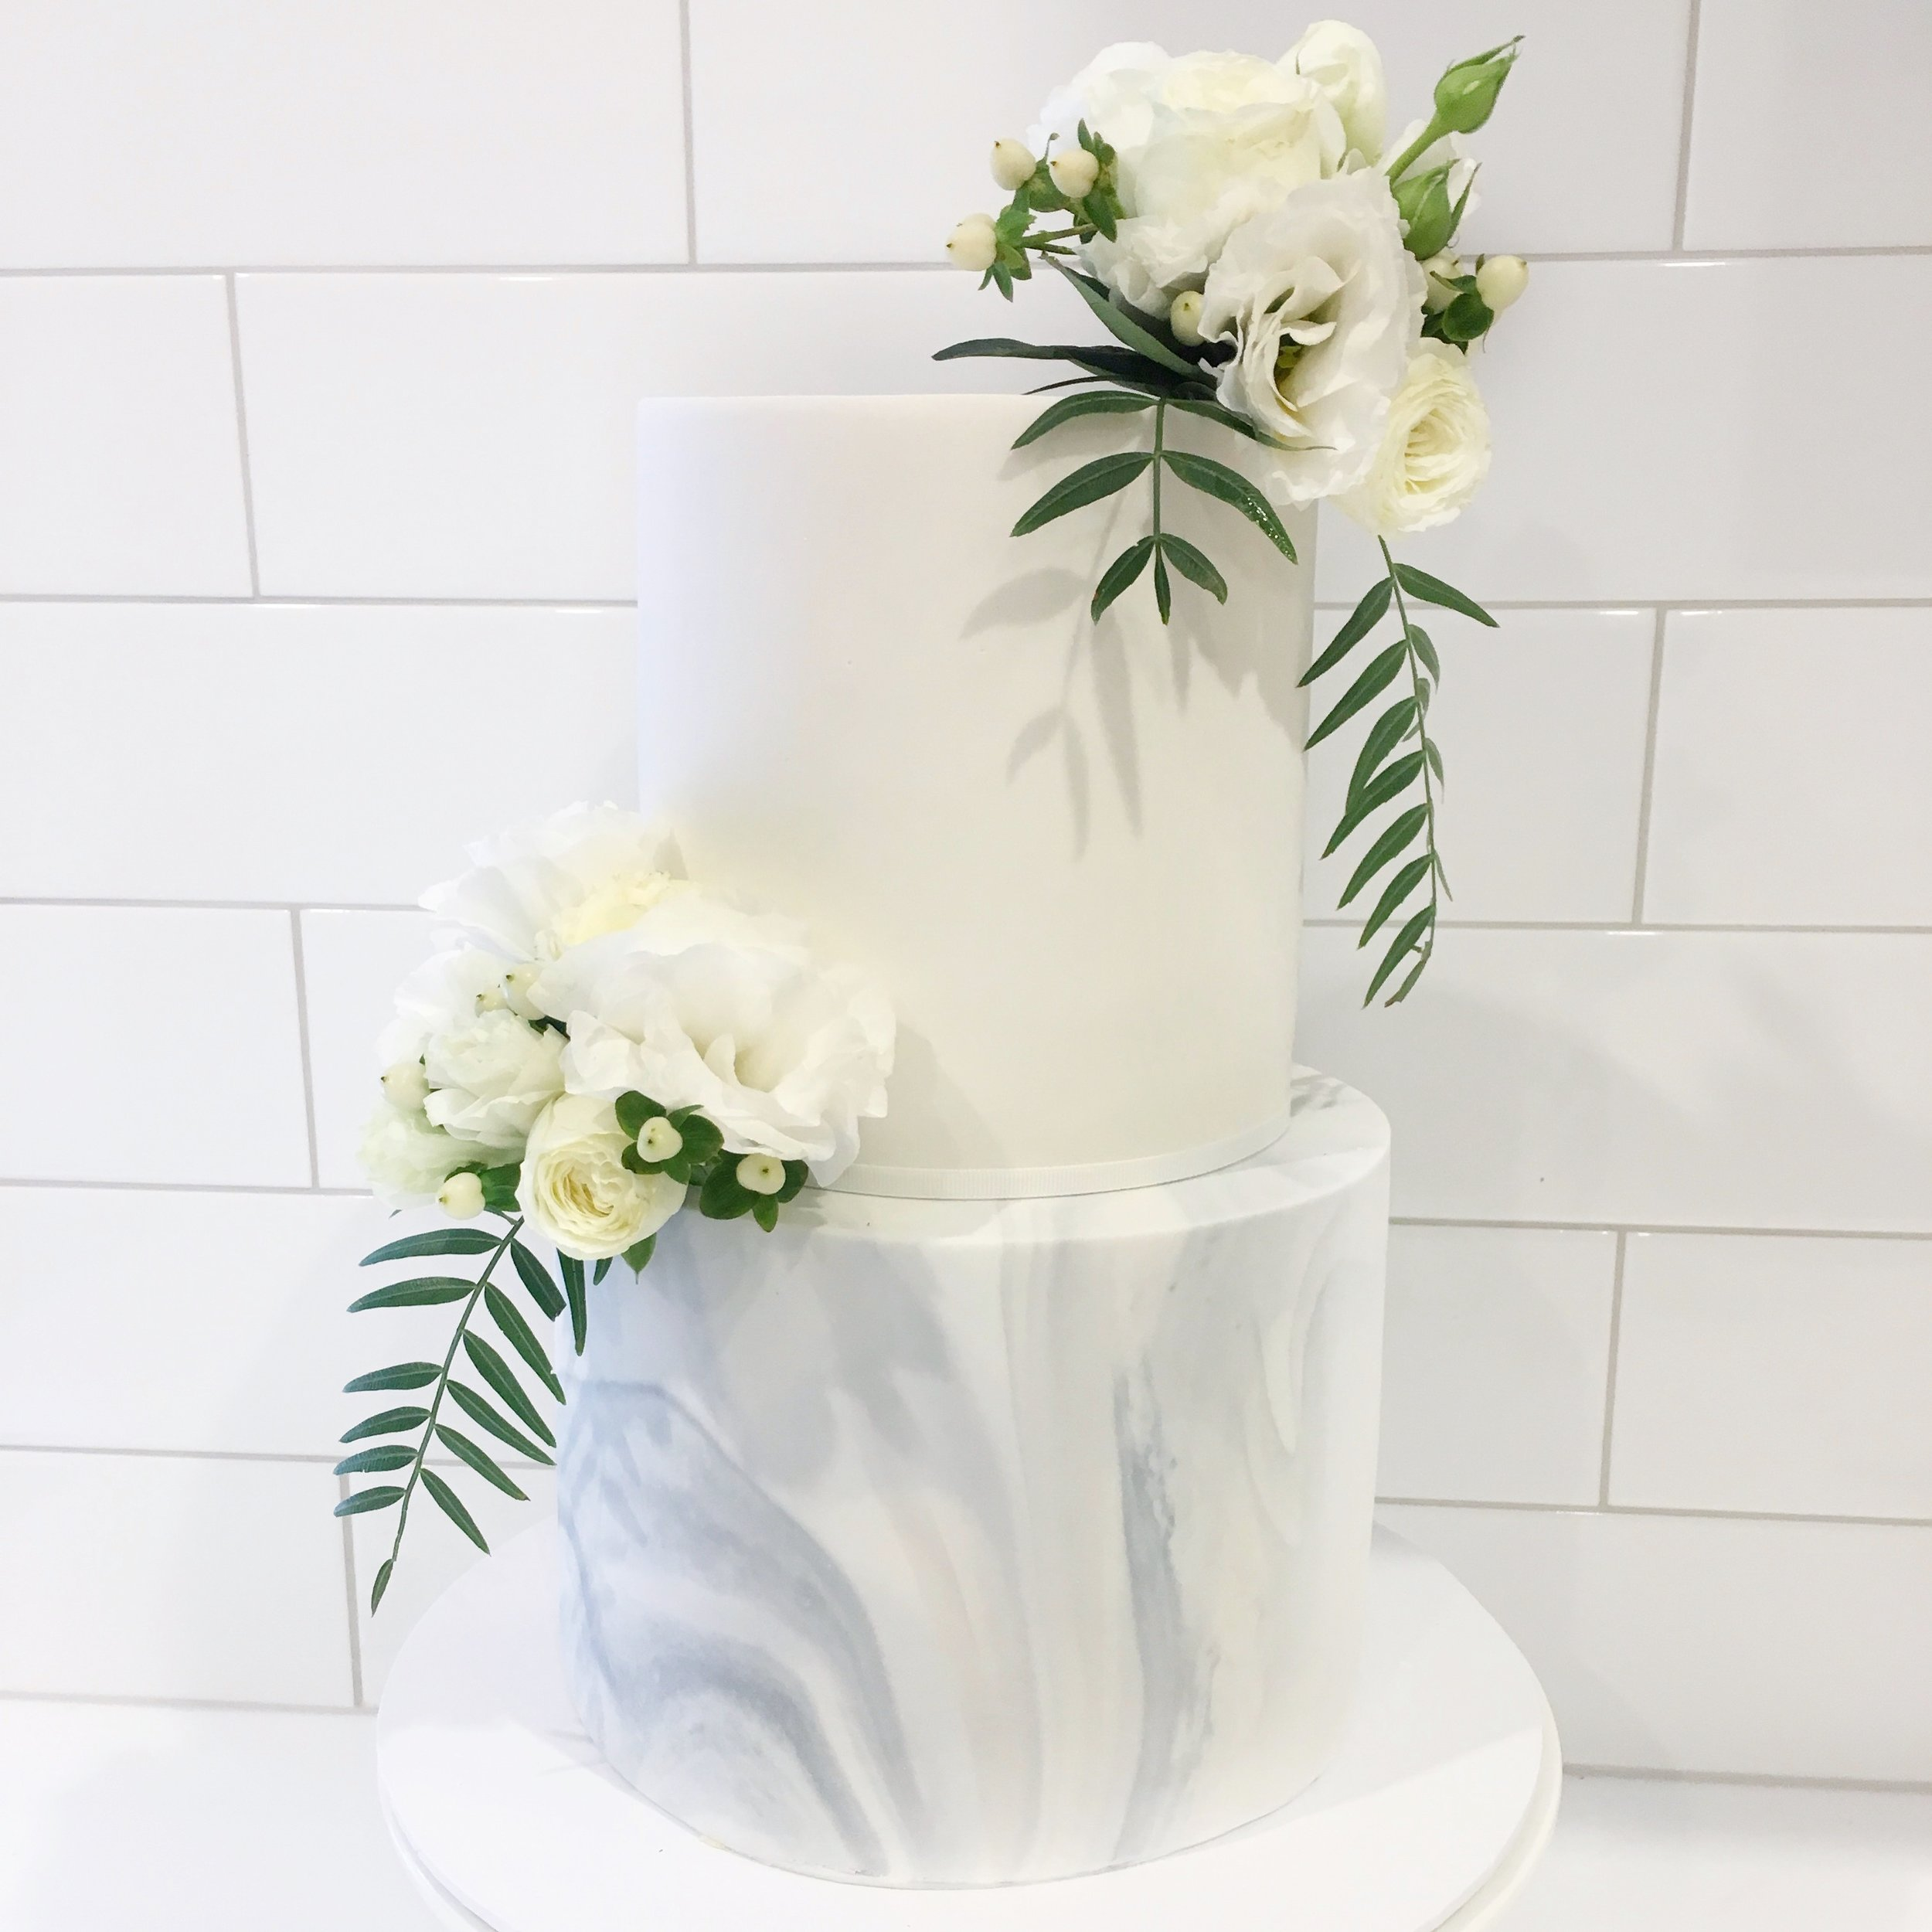 Marble Finish Cake with Fresh Flowers